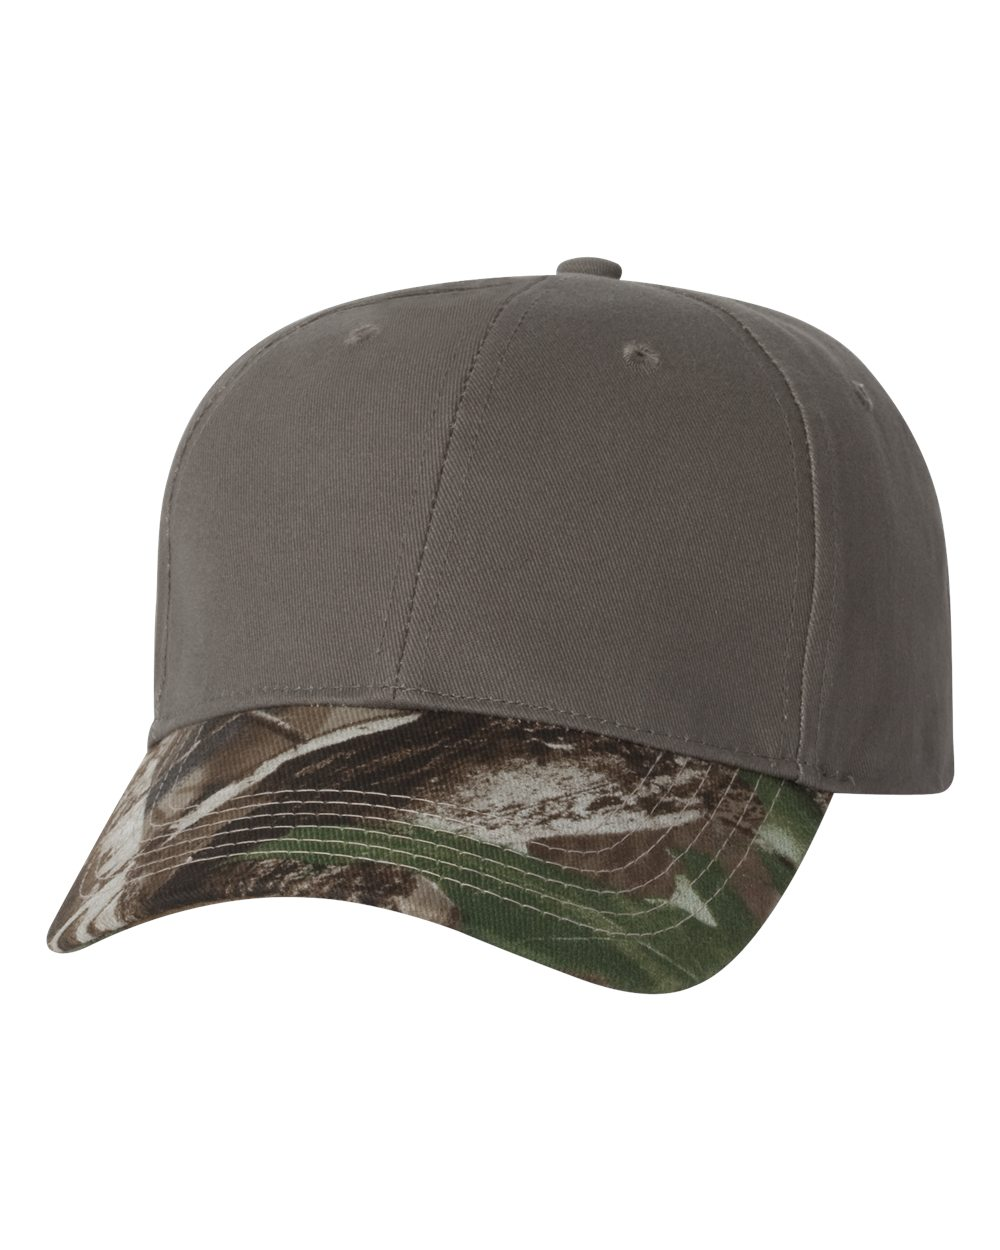 Kati Mo25 Solid Crown Camoflage Cap 3 84 Headwear